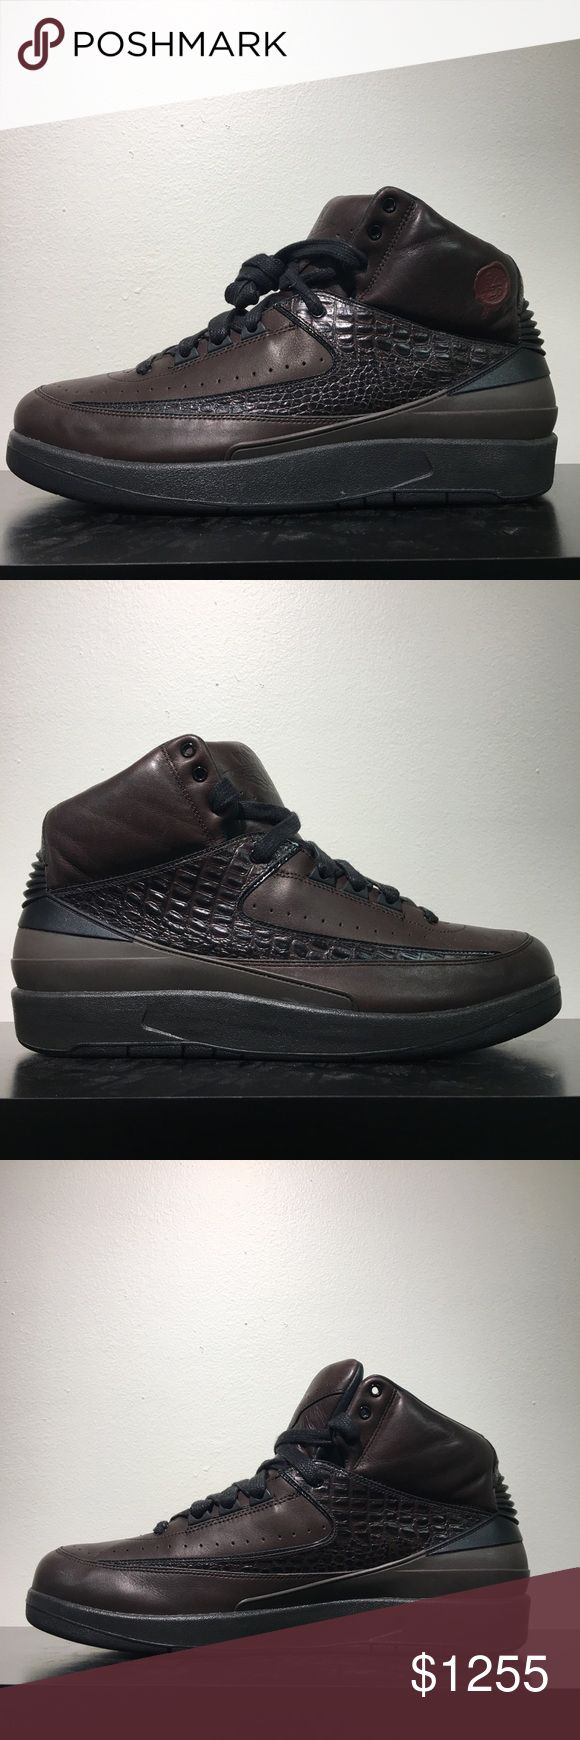 Air Jordan Retro 2 Premio Bin 23 One of the rarest and most sought after Jordan releases  ever!  In excellent condition   Comes with OG everything including dust bags and wooden shoe trees  It's rumored this legacy collection was created and scrapped due to the fact luxury materials of this caliber had never been on a Jordan release.   The designers went into the trashed designs, or the bin, and brought them to life Air Jordan Shoes Sneakers